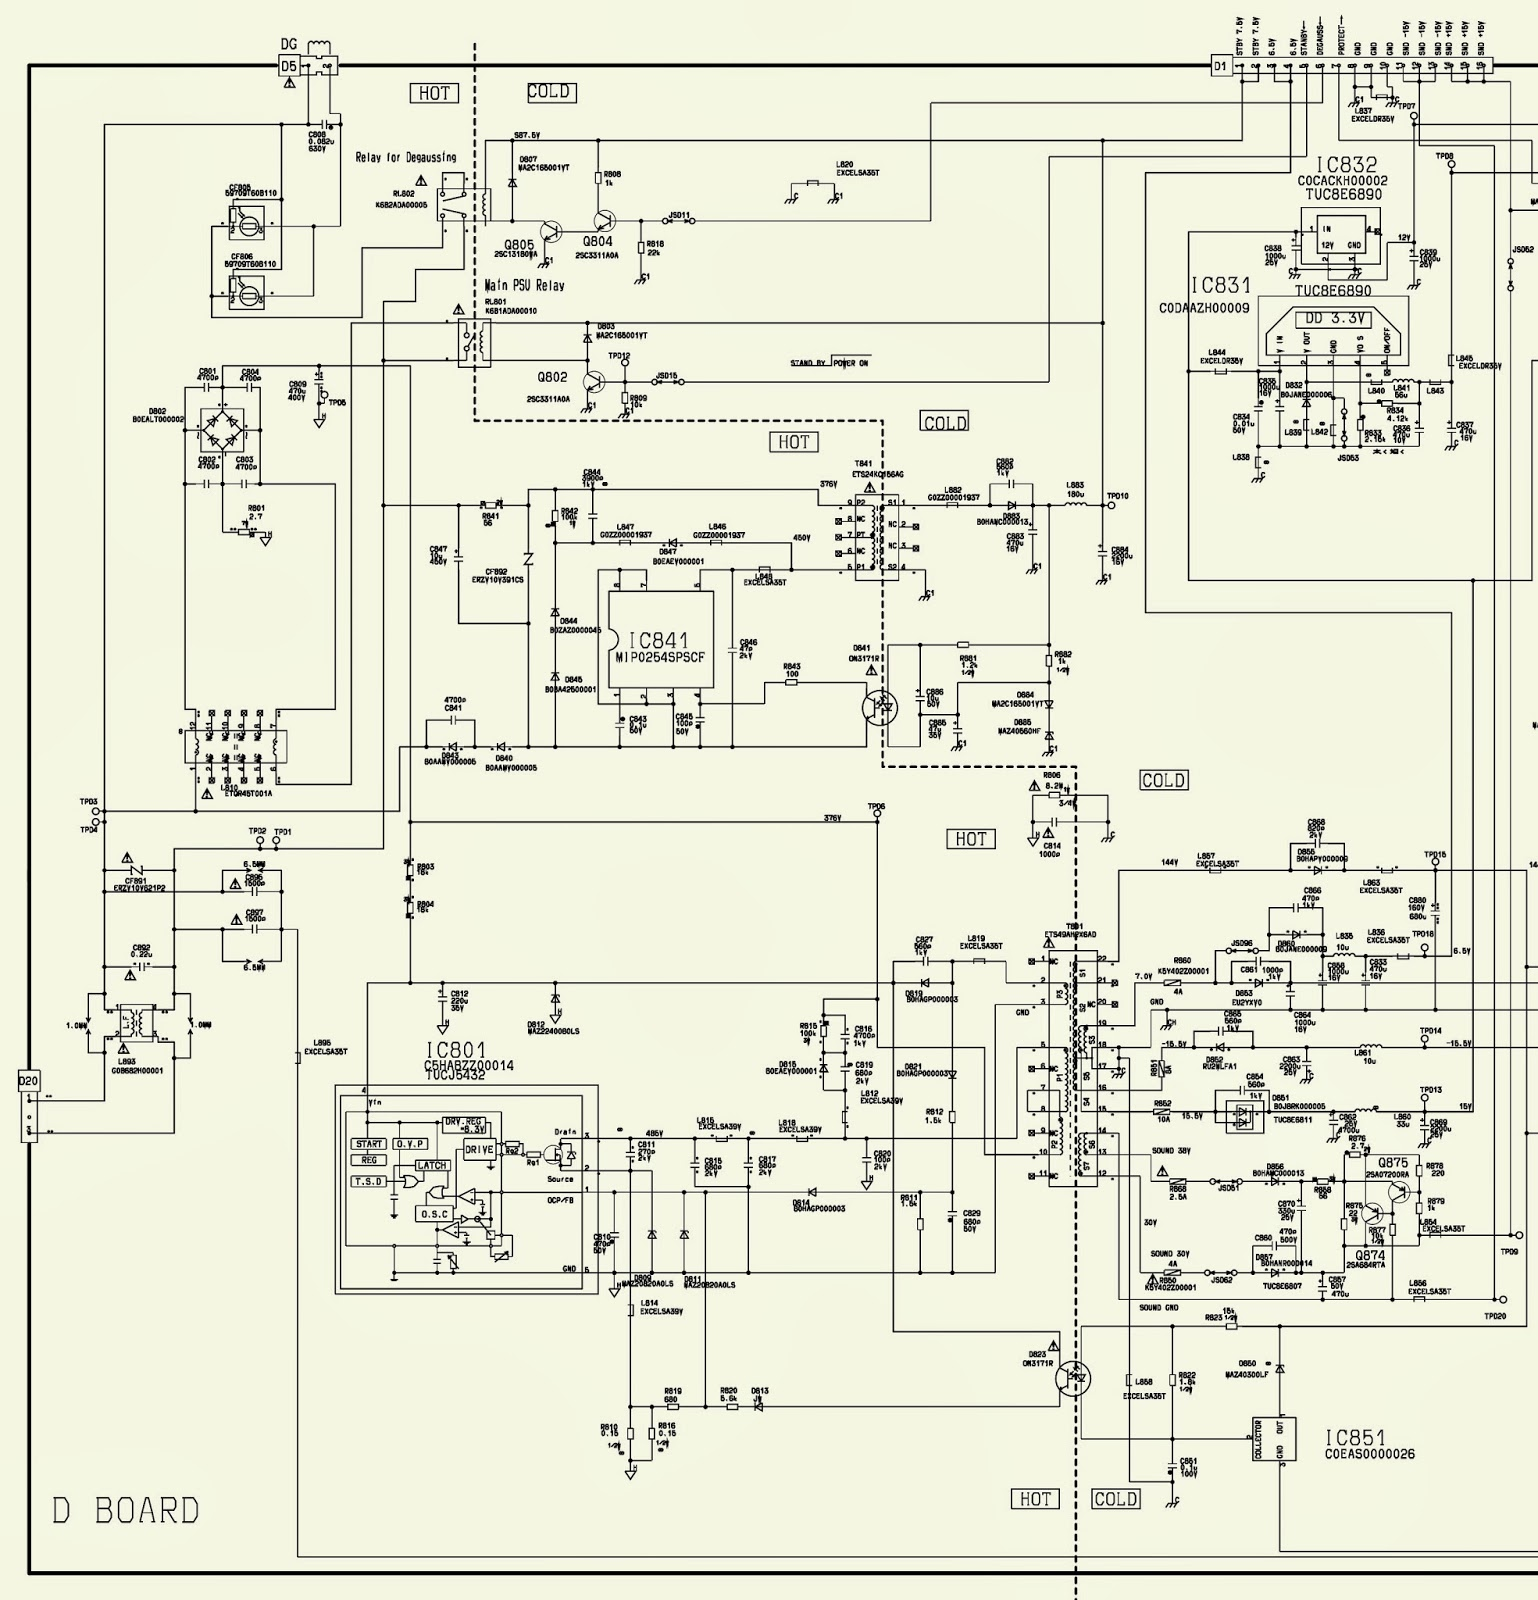 Power Supply Smps Schematic Circuit Diagram Electro Help Wire Center Constant Current Source Using Bg602 Free Electronic Circuits Panasonic Tx 32pd30 36pd30 Rh Electronicshelponline Blogspot Com